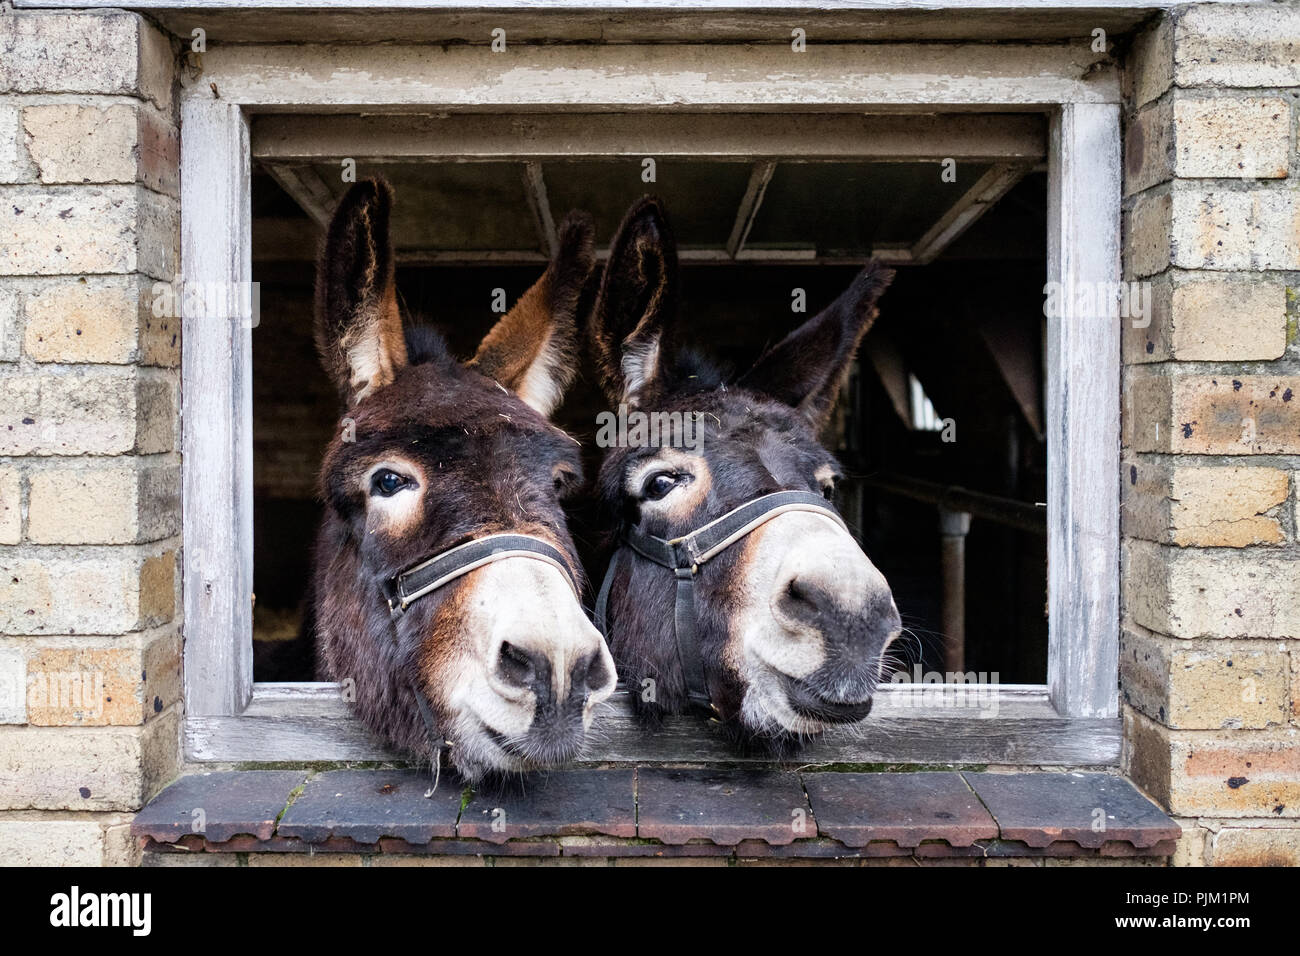 Two donkeys in a barn at Wheelbirks Parlour, Stocksfield, England. - Stock Image